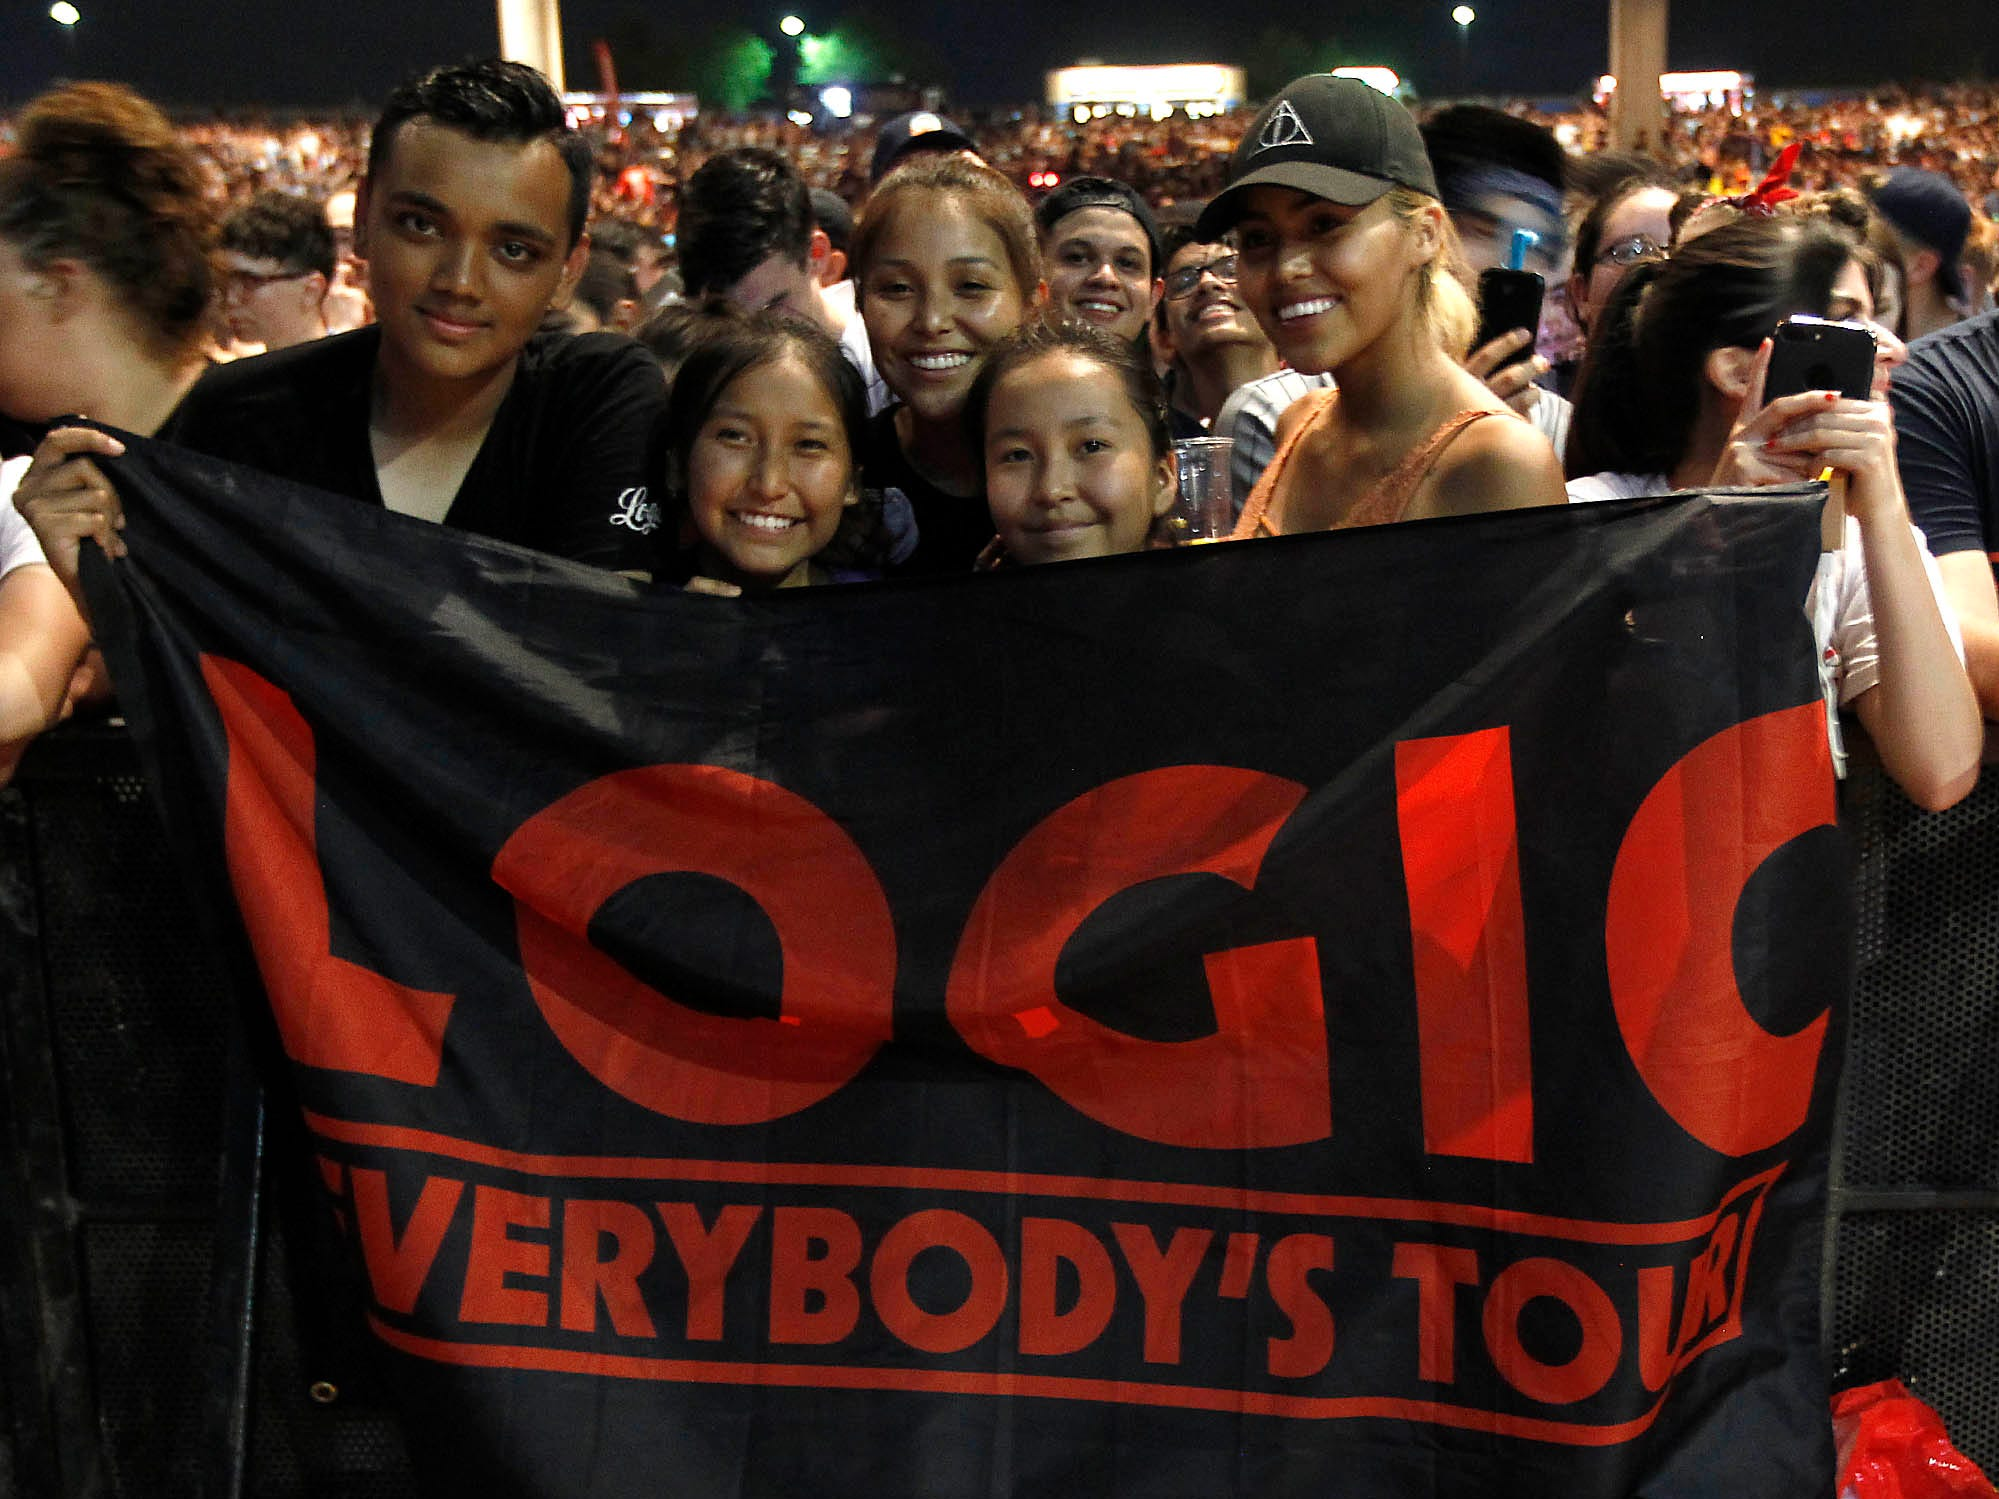 Fans hold up a Logic banner during his Bobby Tarantino vs Everybody Tour at Ak-Chin Pavilion in Phoenix on Wednesday, July 25, 2018.